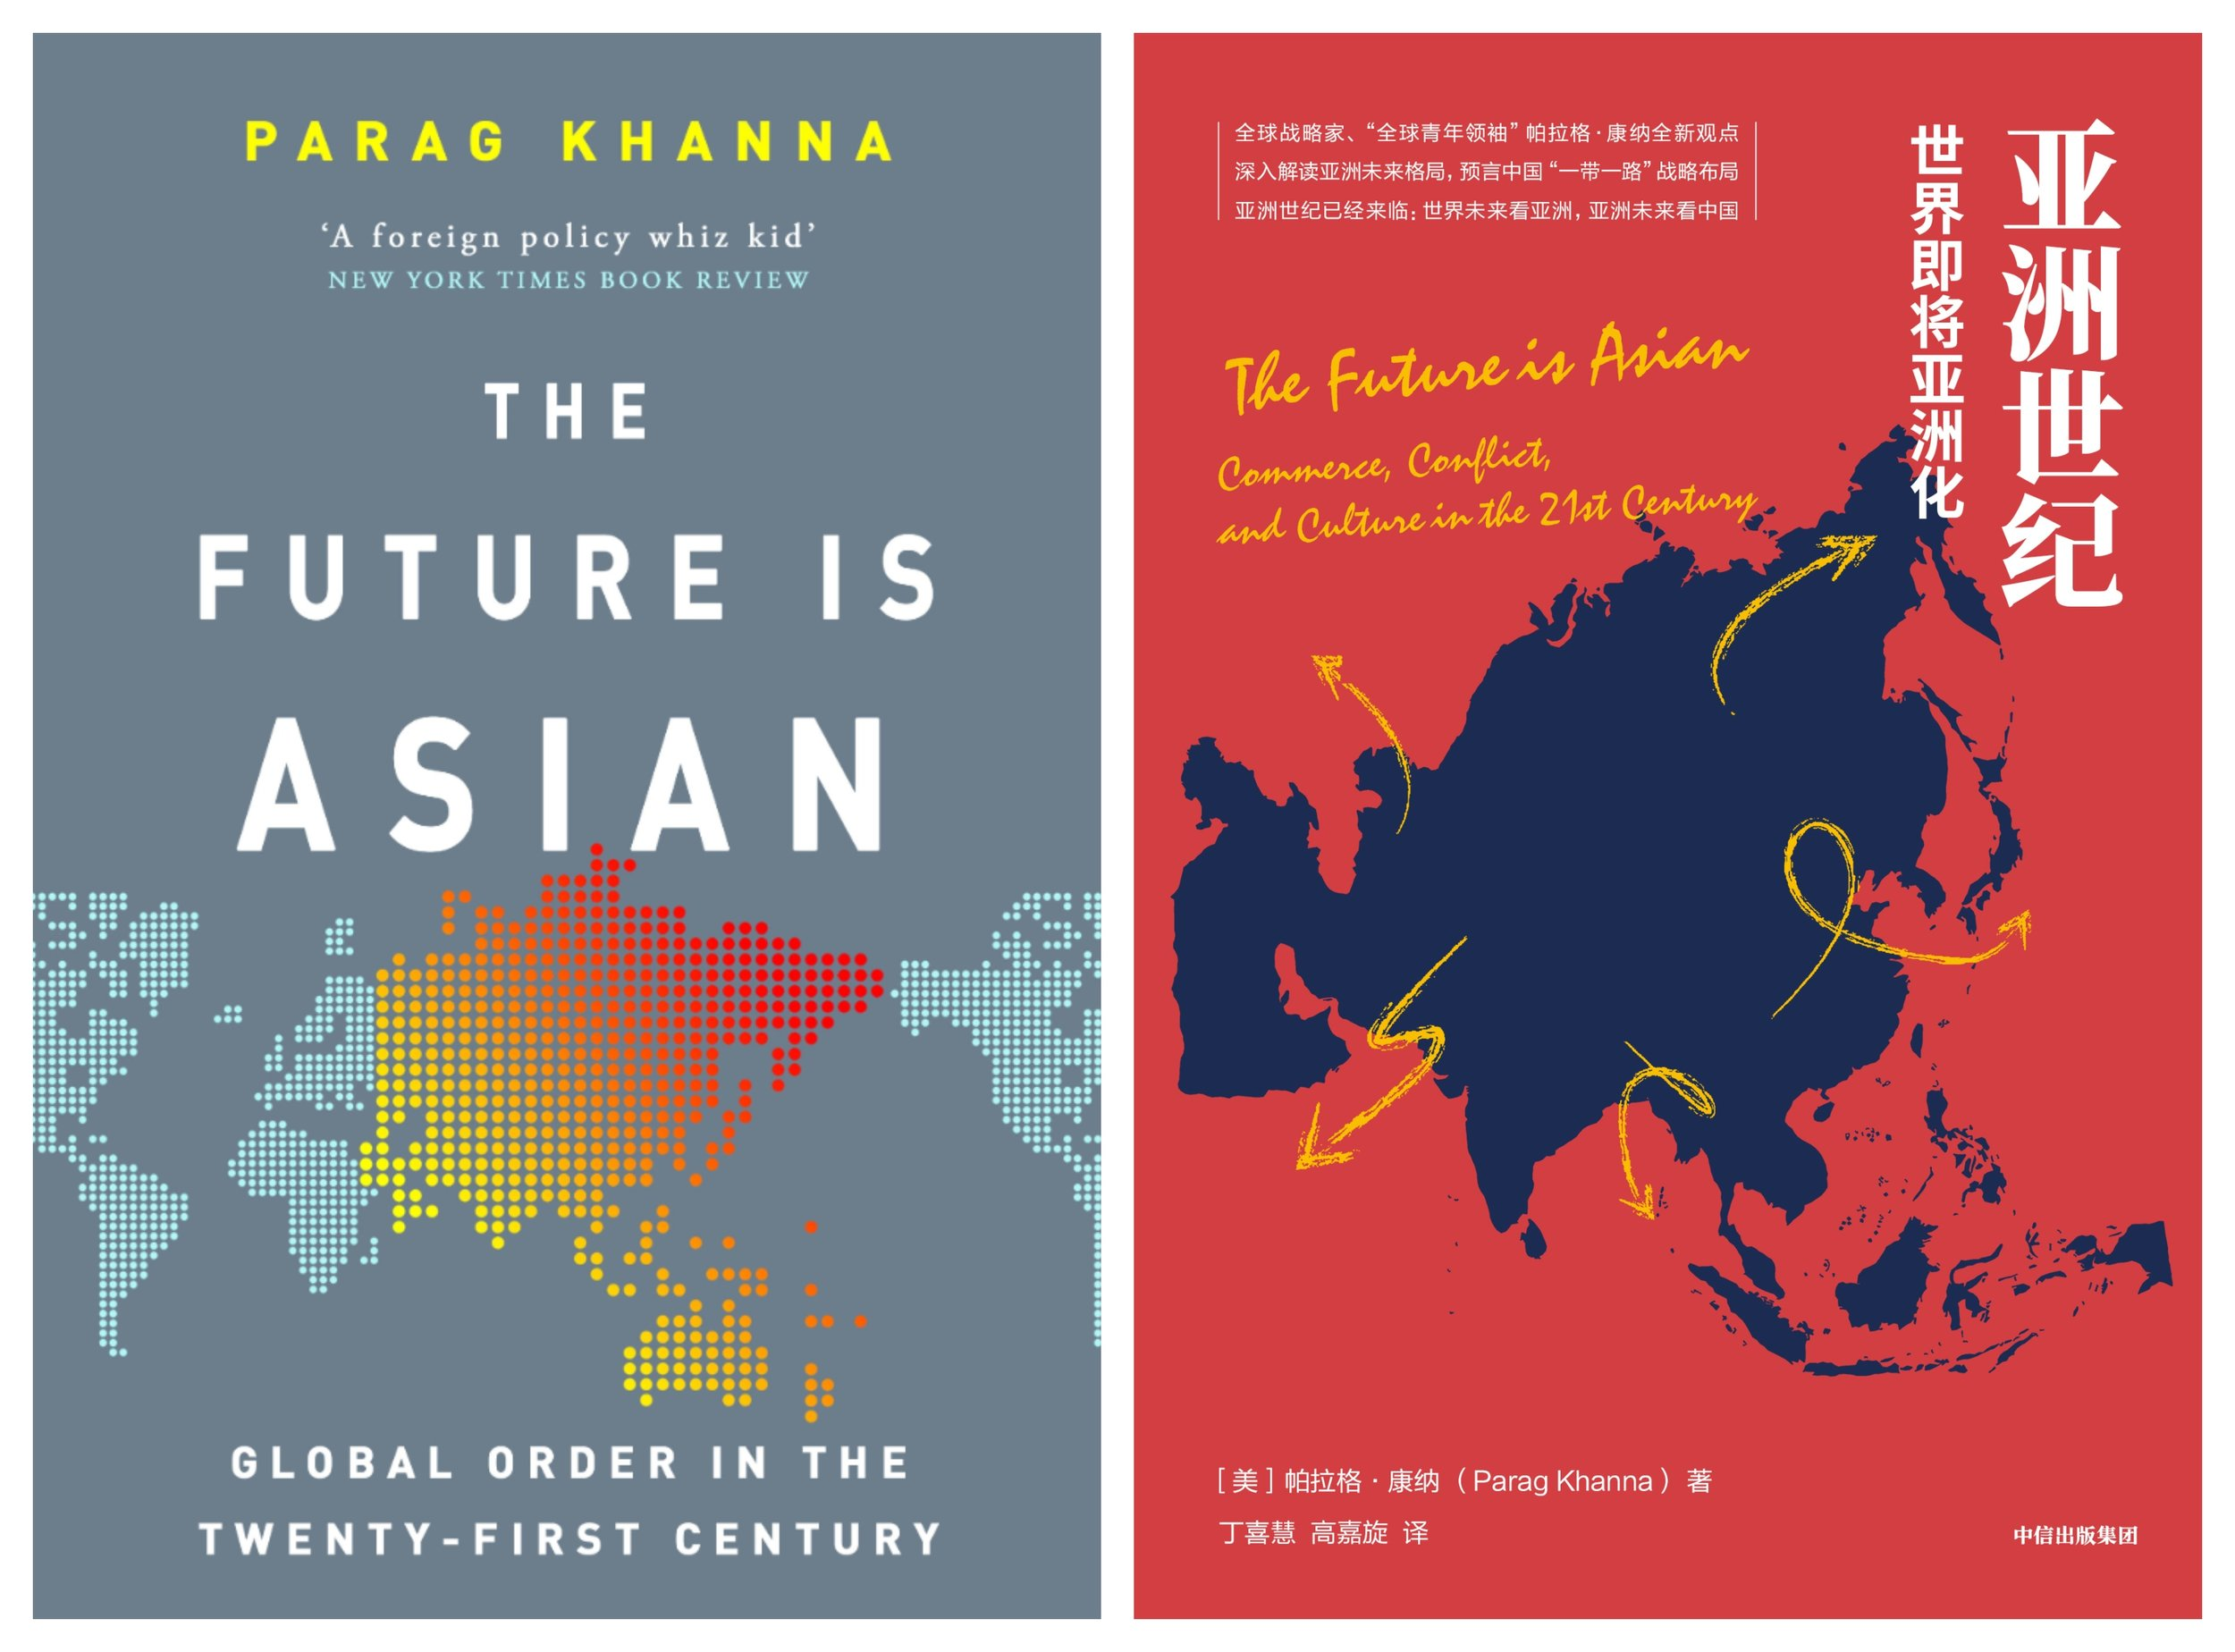 The Future Is Asian Book Covers by Parag Khanna